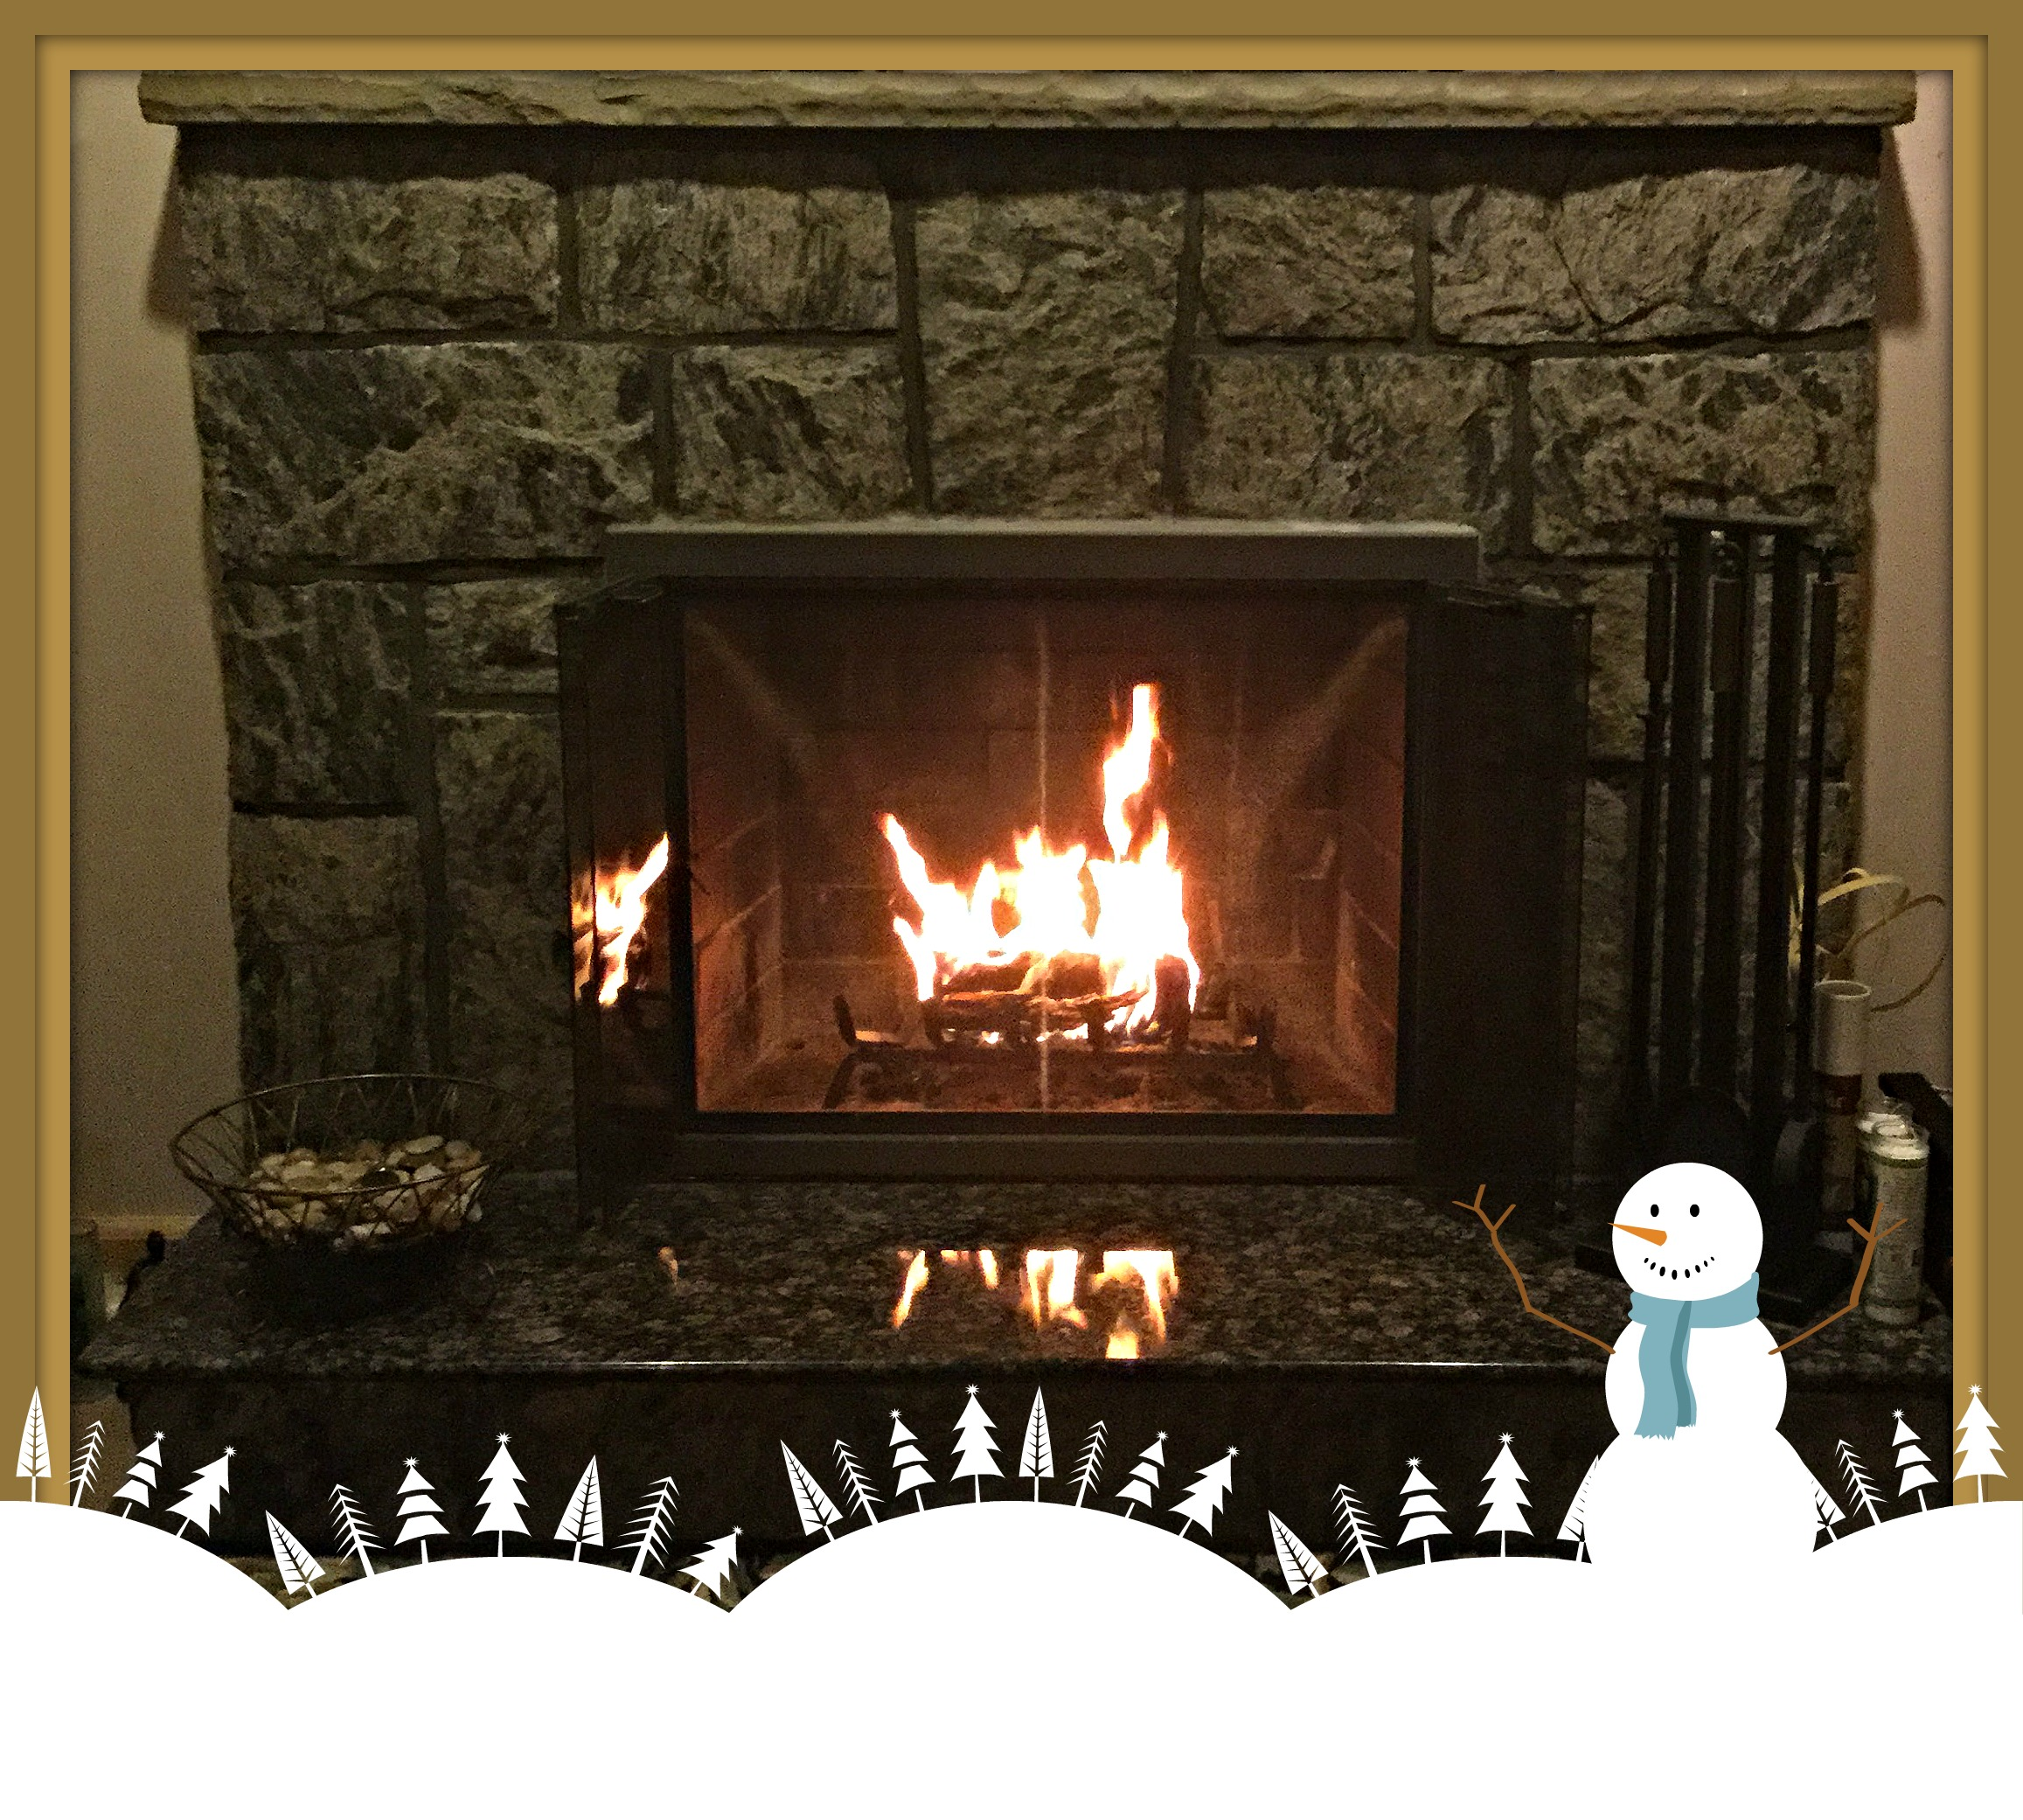 2016-01-30 23.30.28- FIREPLACE WITH FRAME